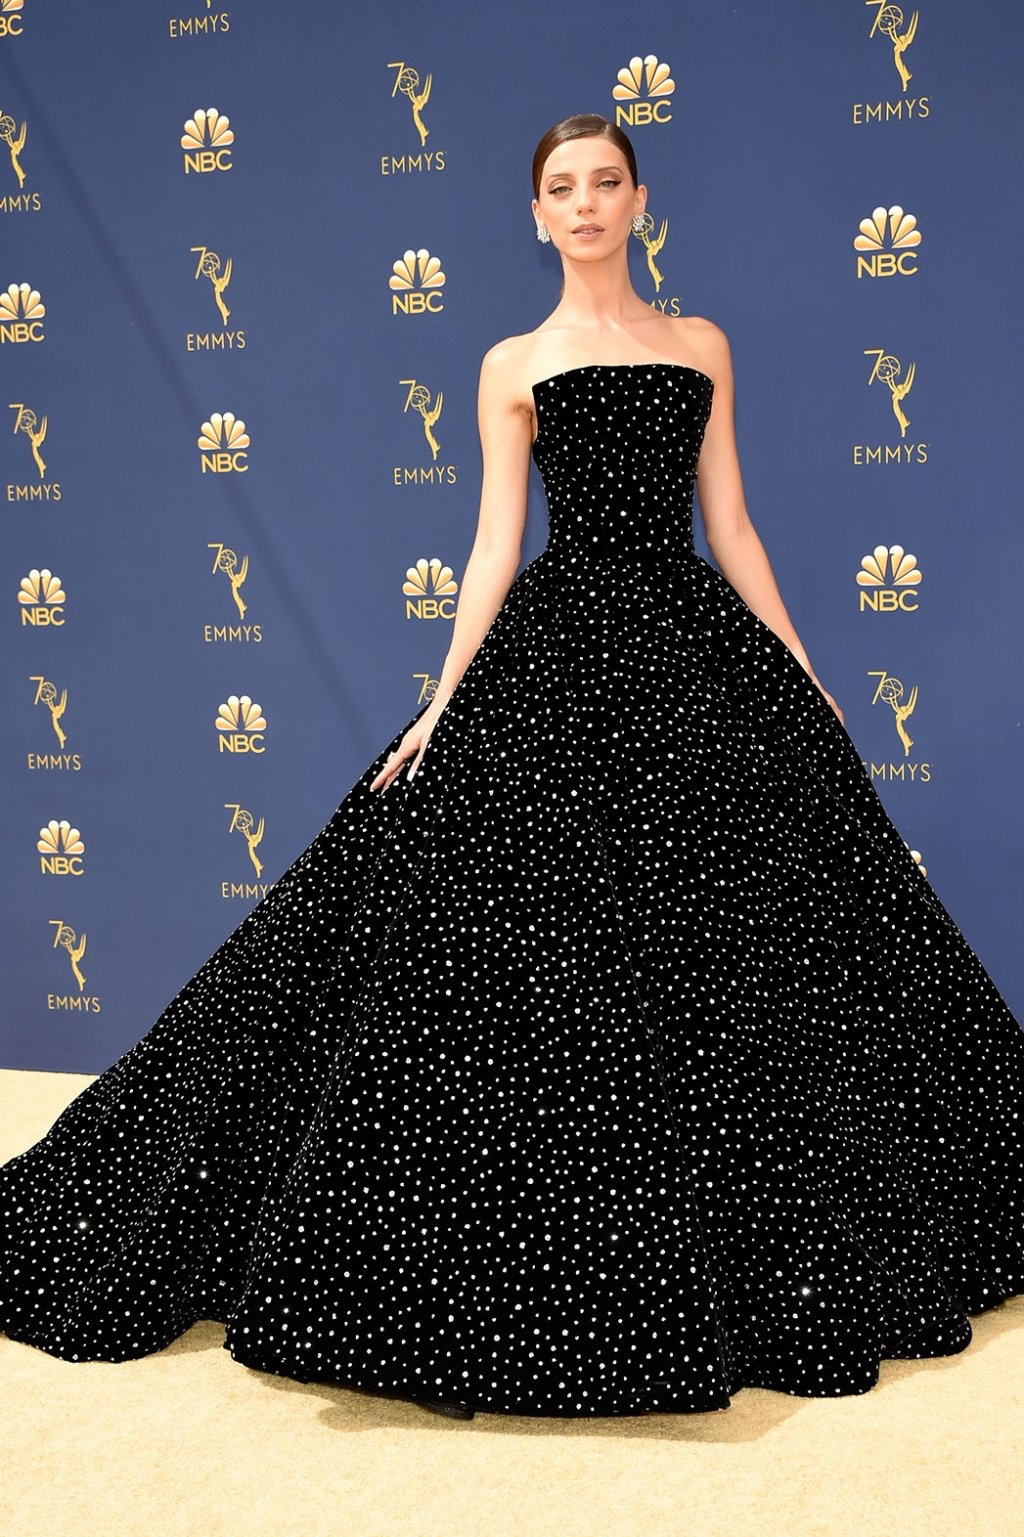 Angela Sarafyan in Christian Siriano, 70th Annual Primetime Emmy Awards, Betty White, Emmys 2018, Fashion, Featured, Glenn Weiss, Hannah Gadsby, highlights, Jav Svendsen, Online Exclusive, Style, The Marvellous Mrs. Maisel, top moments, We solved it, Diversity